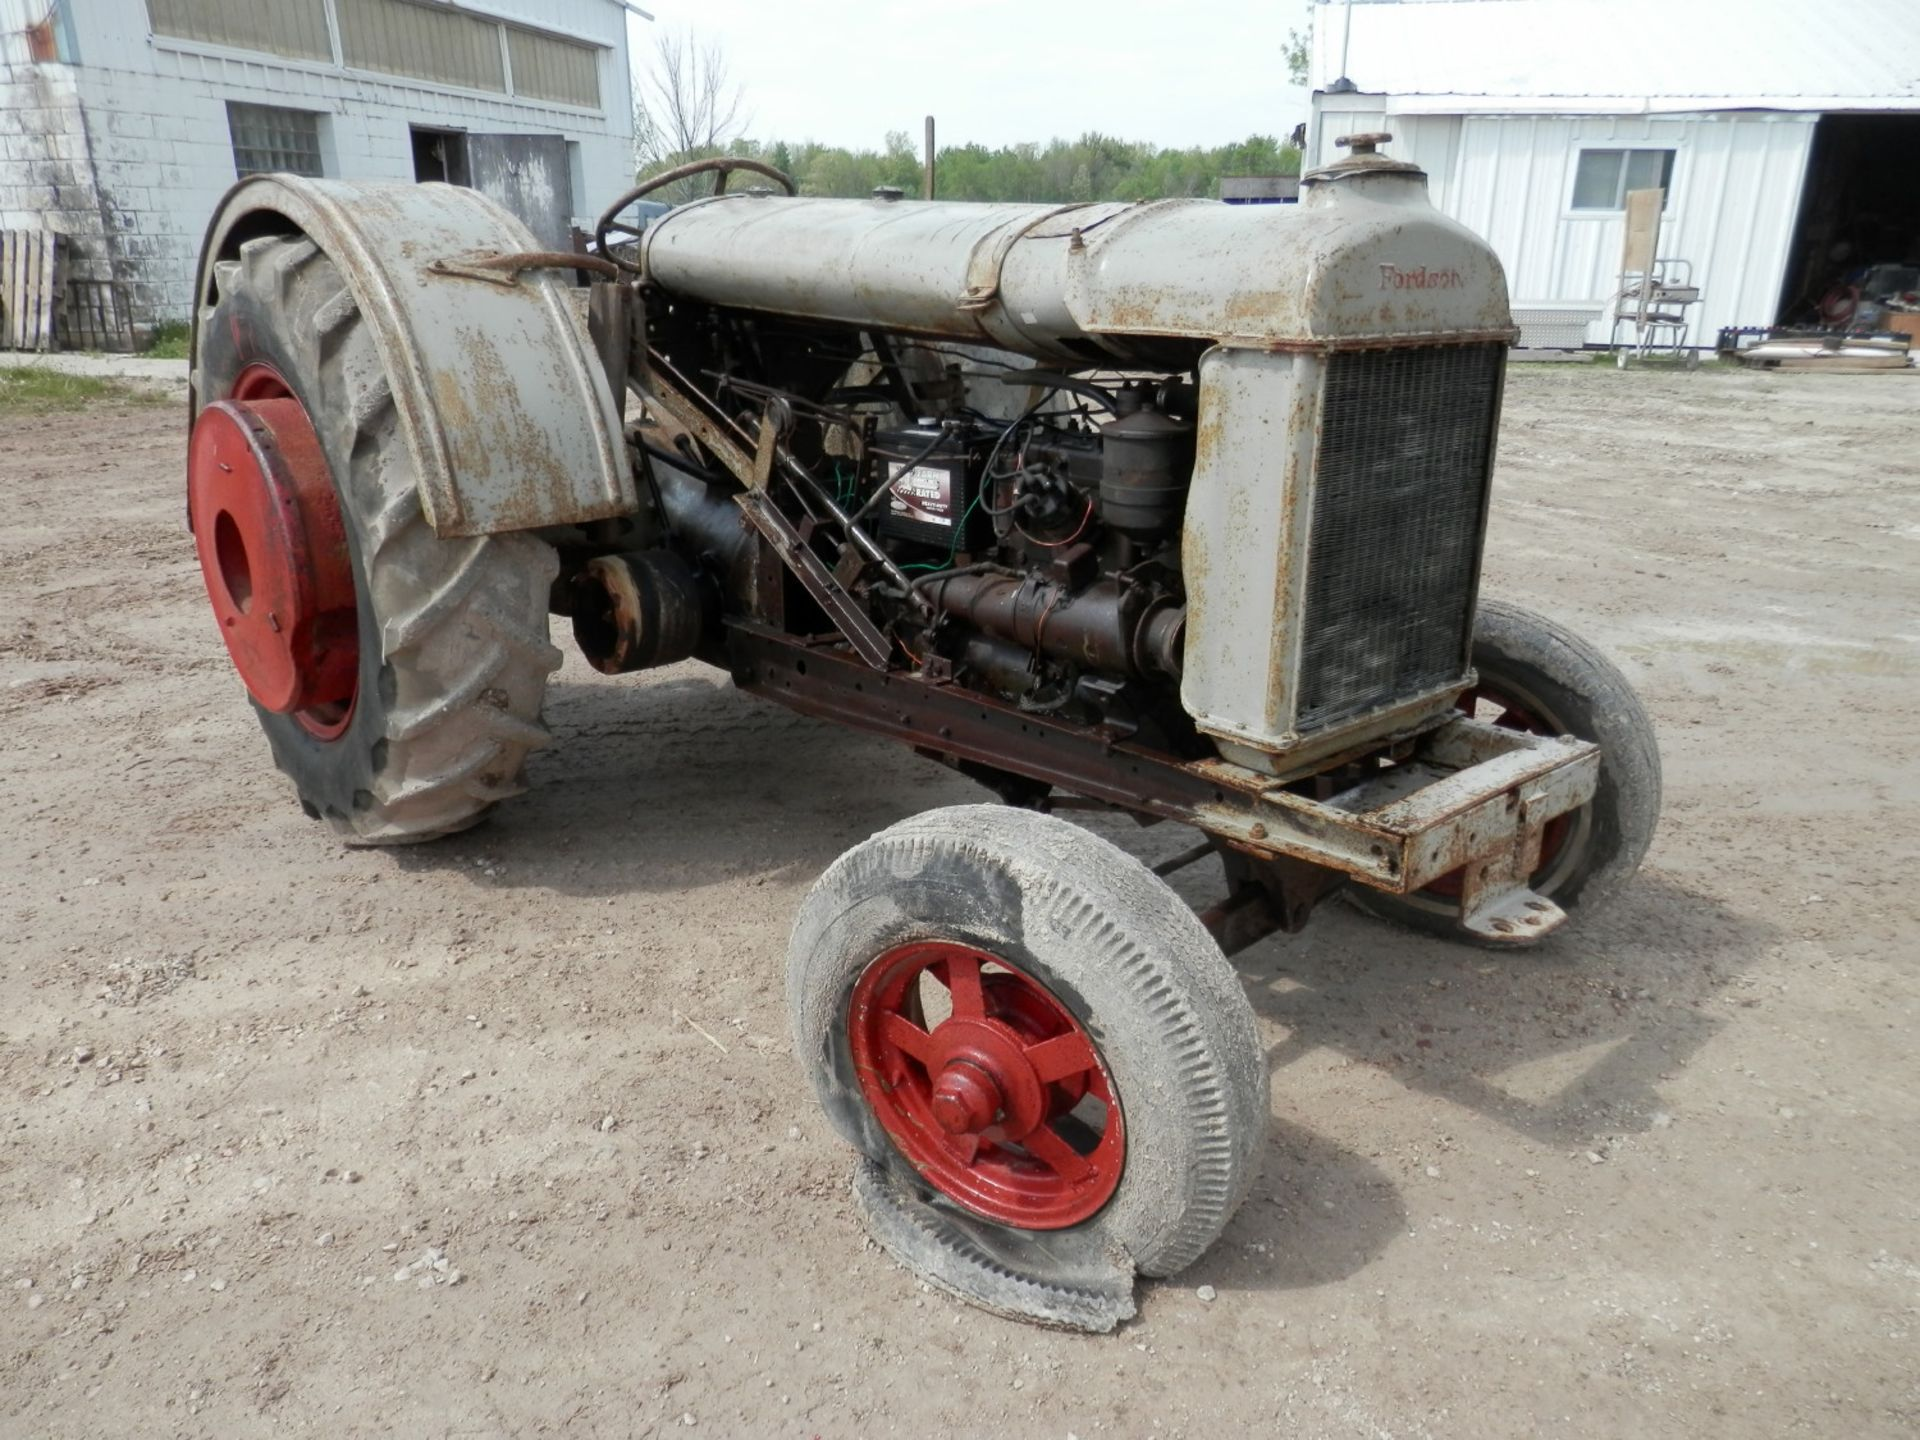 """FORDSON """"DONKEY"""" TRACTOR - Image 4 of 10"""